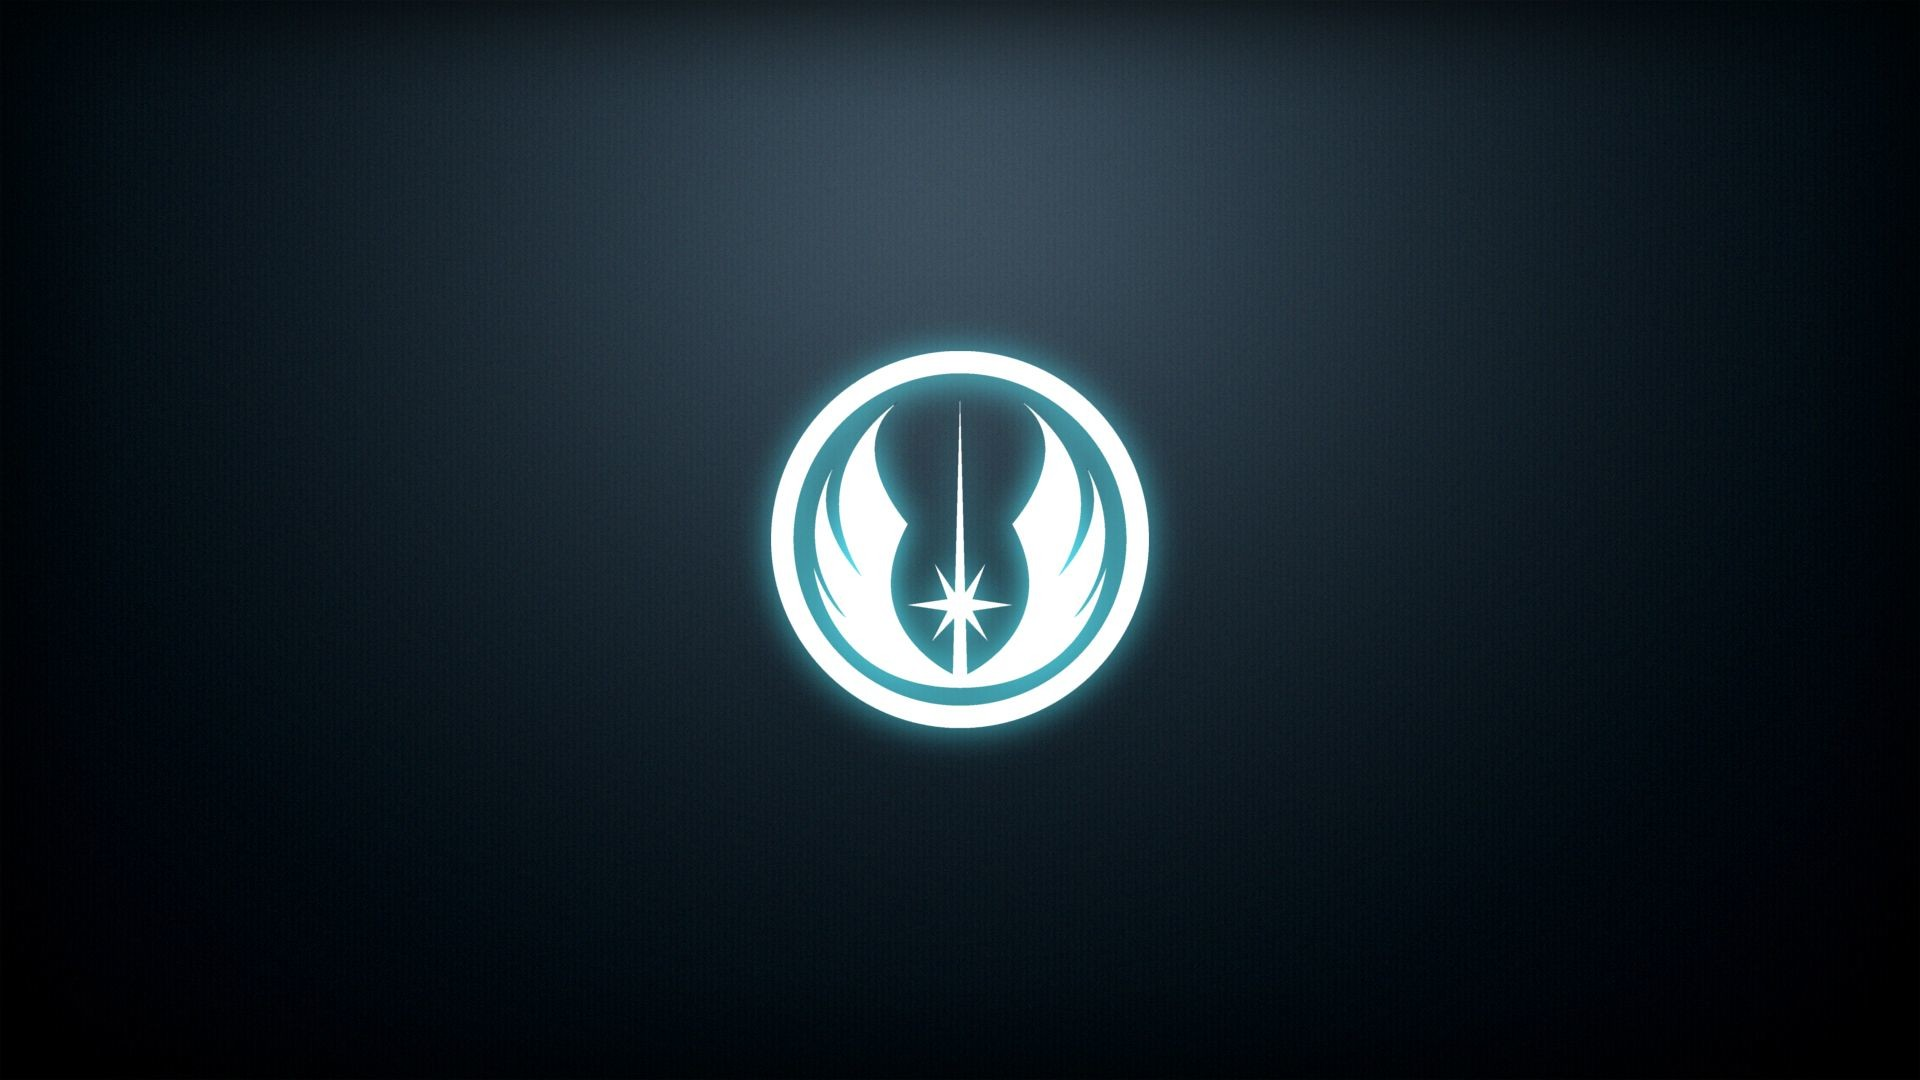 A wallpaper you guys might like. The Jedi Order emblem. I'll do a Sith one  too if people want me to. [1920×1080].